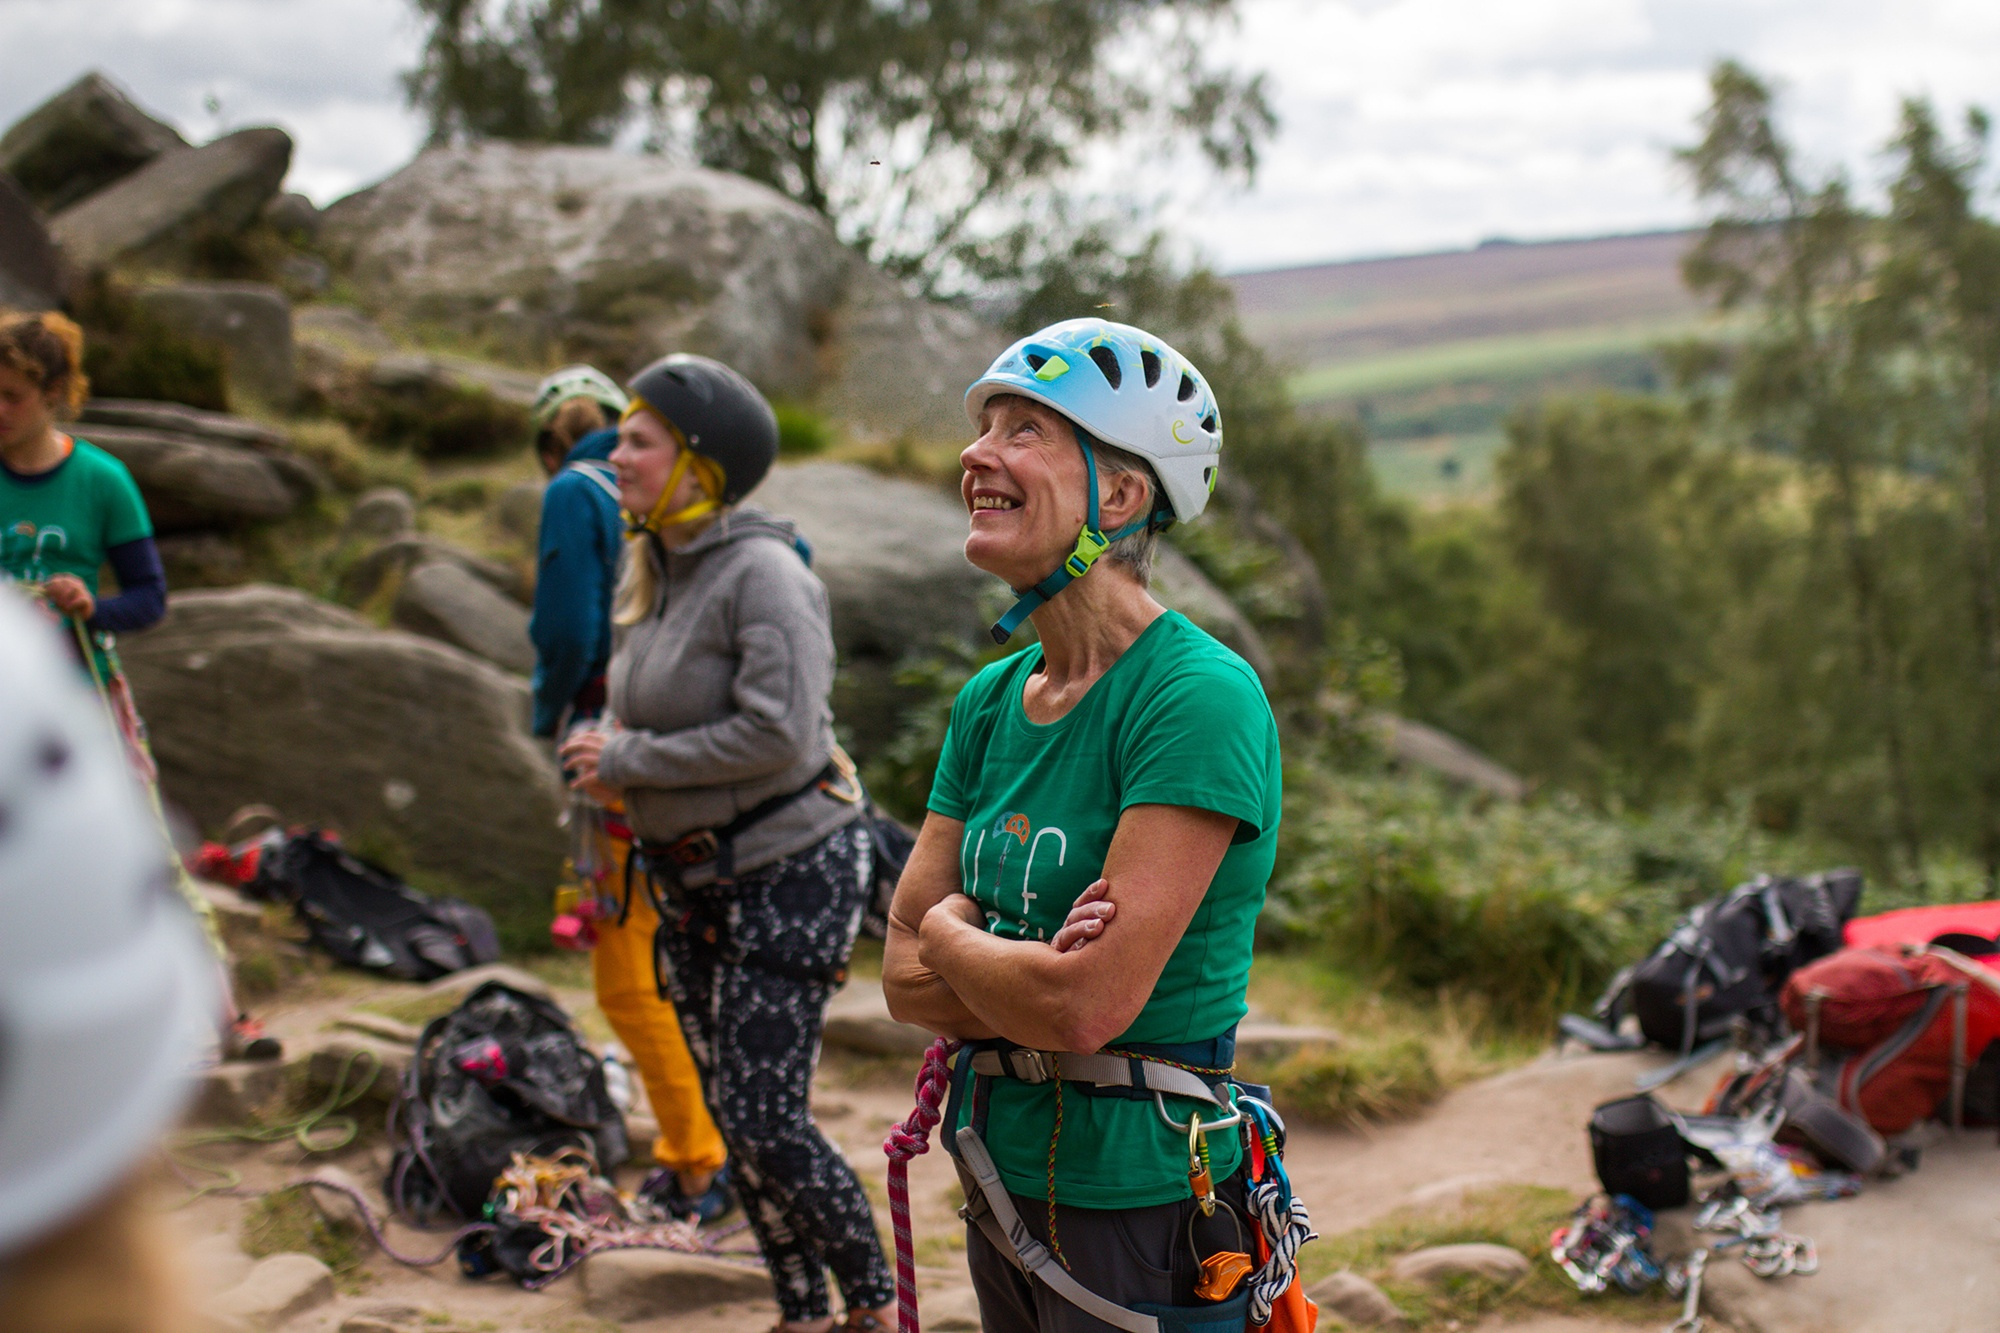 Climber at Women's Trad Festival by Jessie Leong